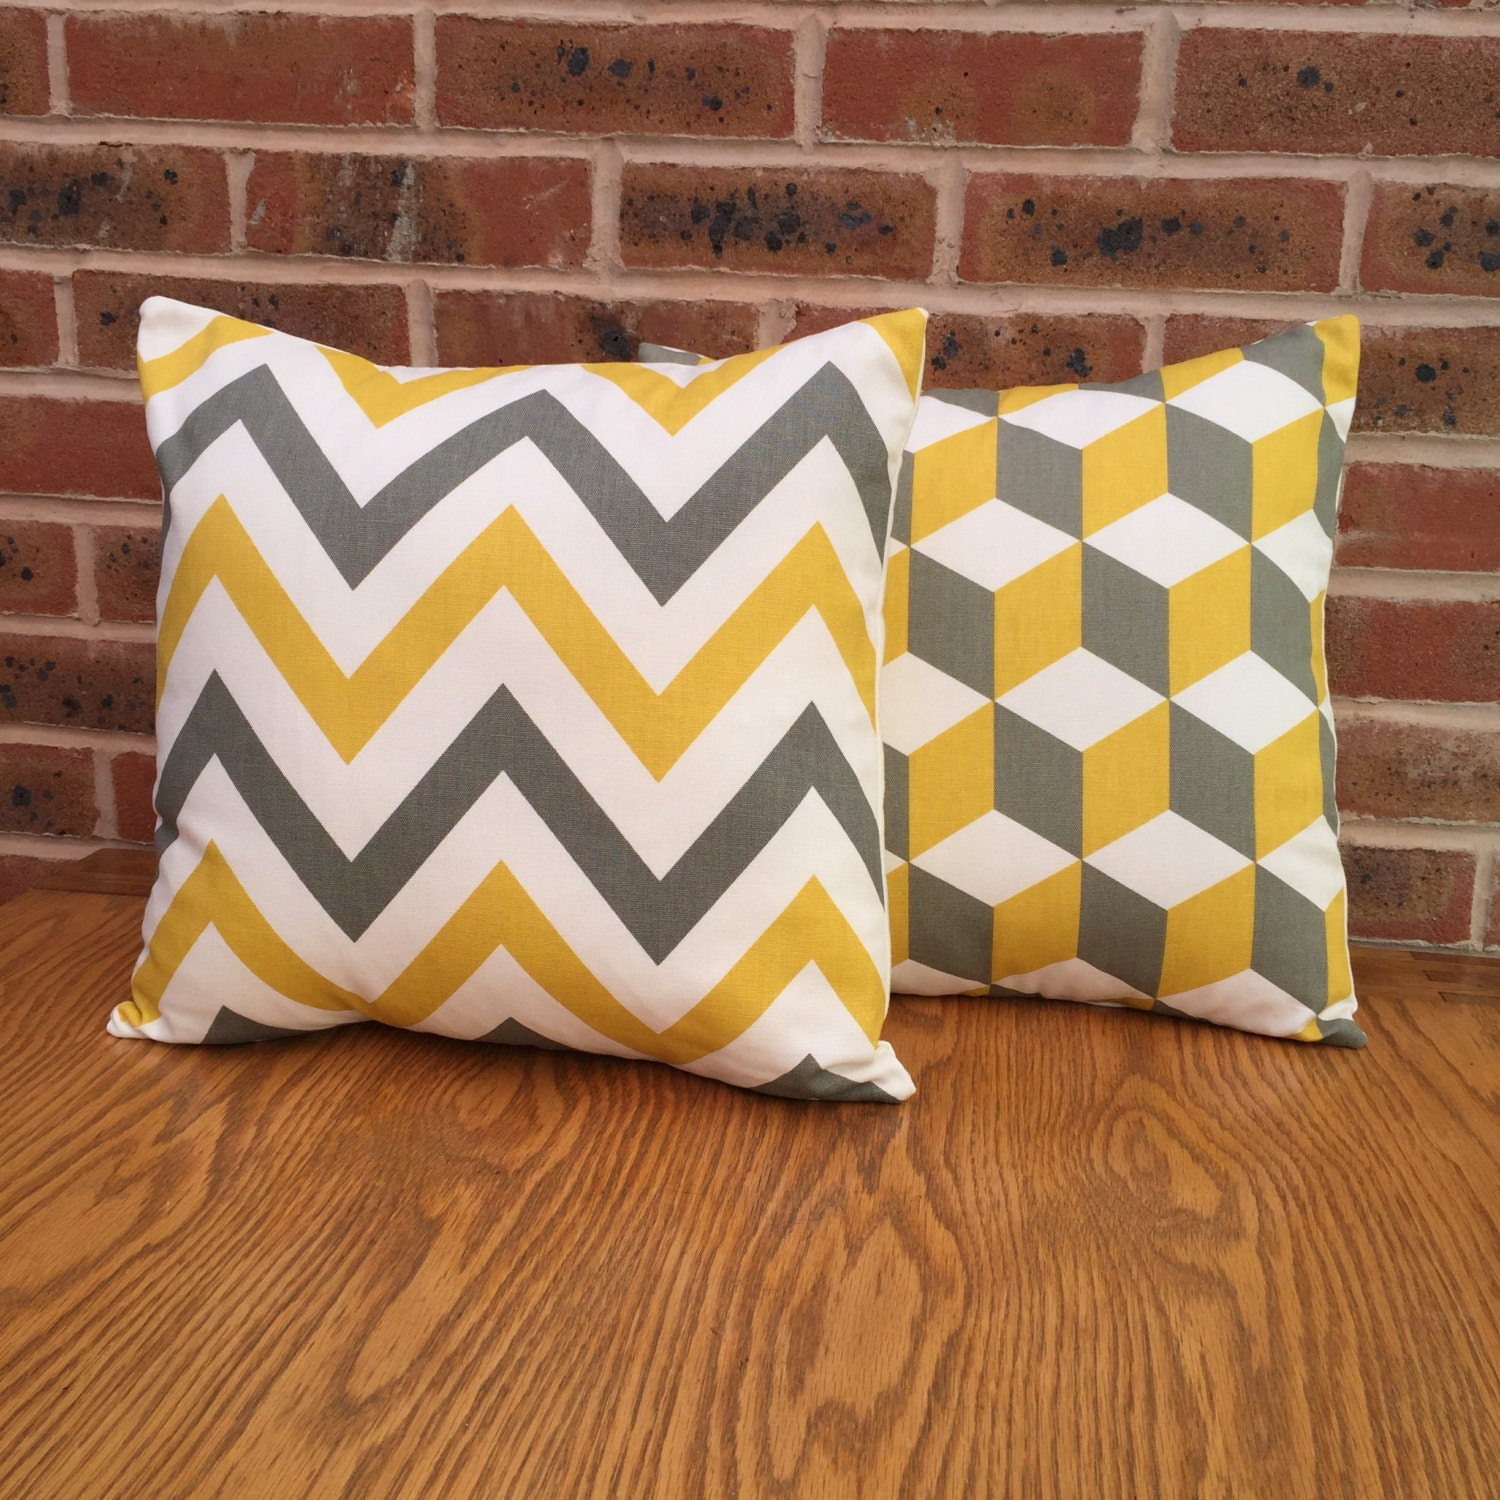 2 pack of yellow and grey geometric 16 cushion covers Large Chevron ZigZag and Cube Squares